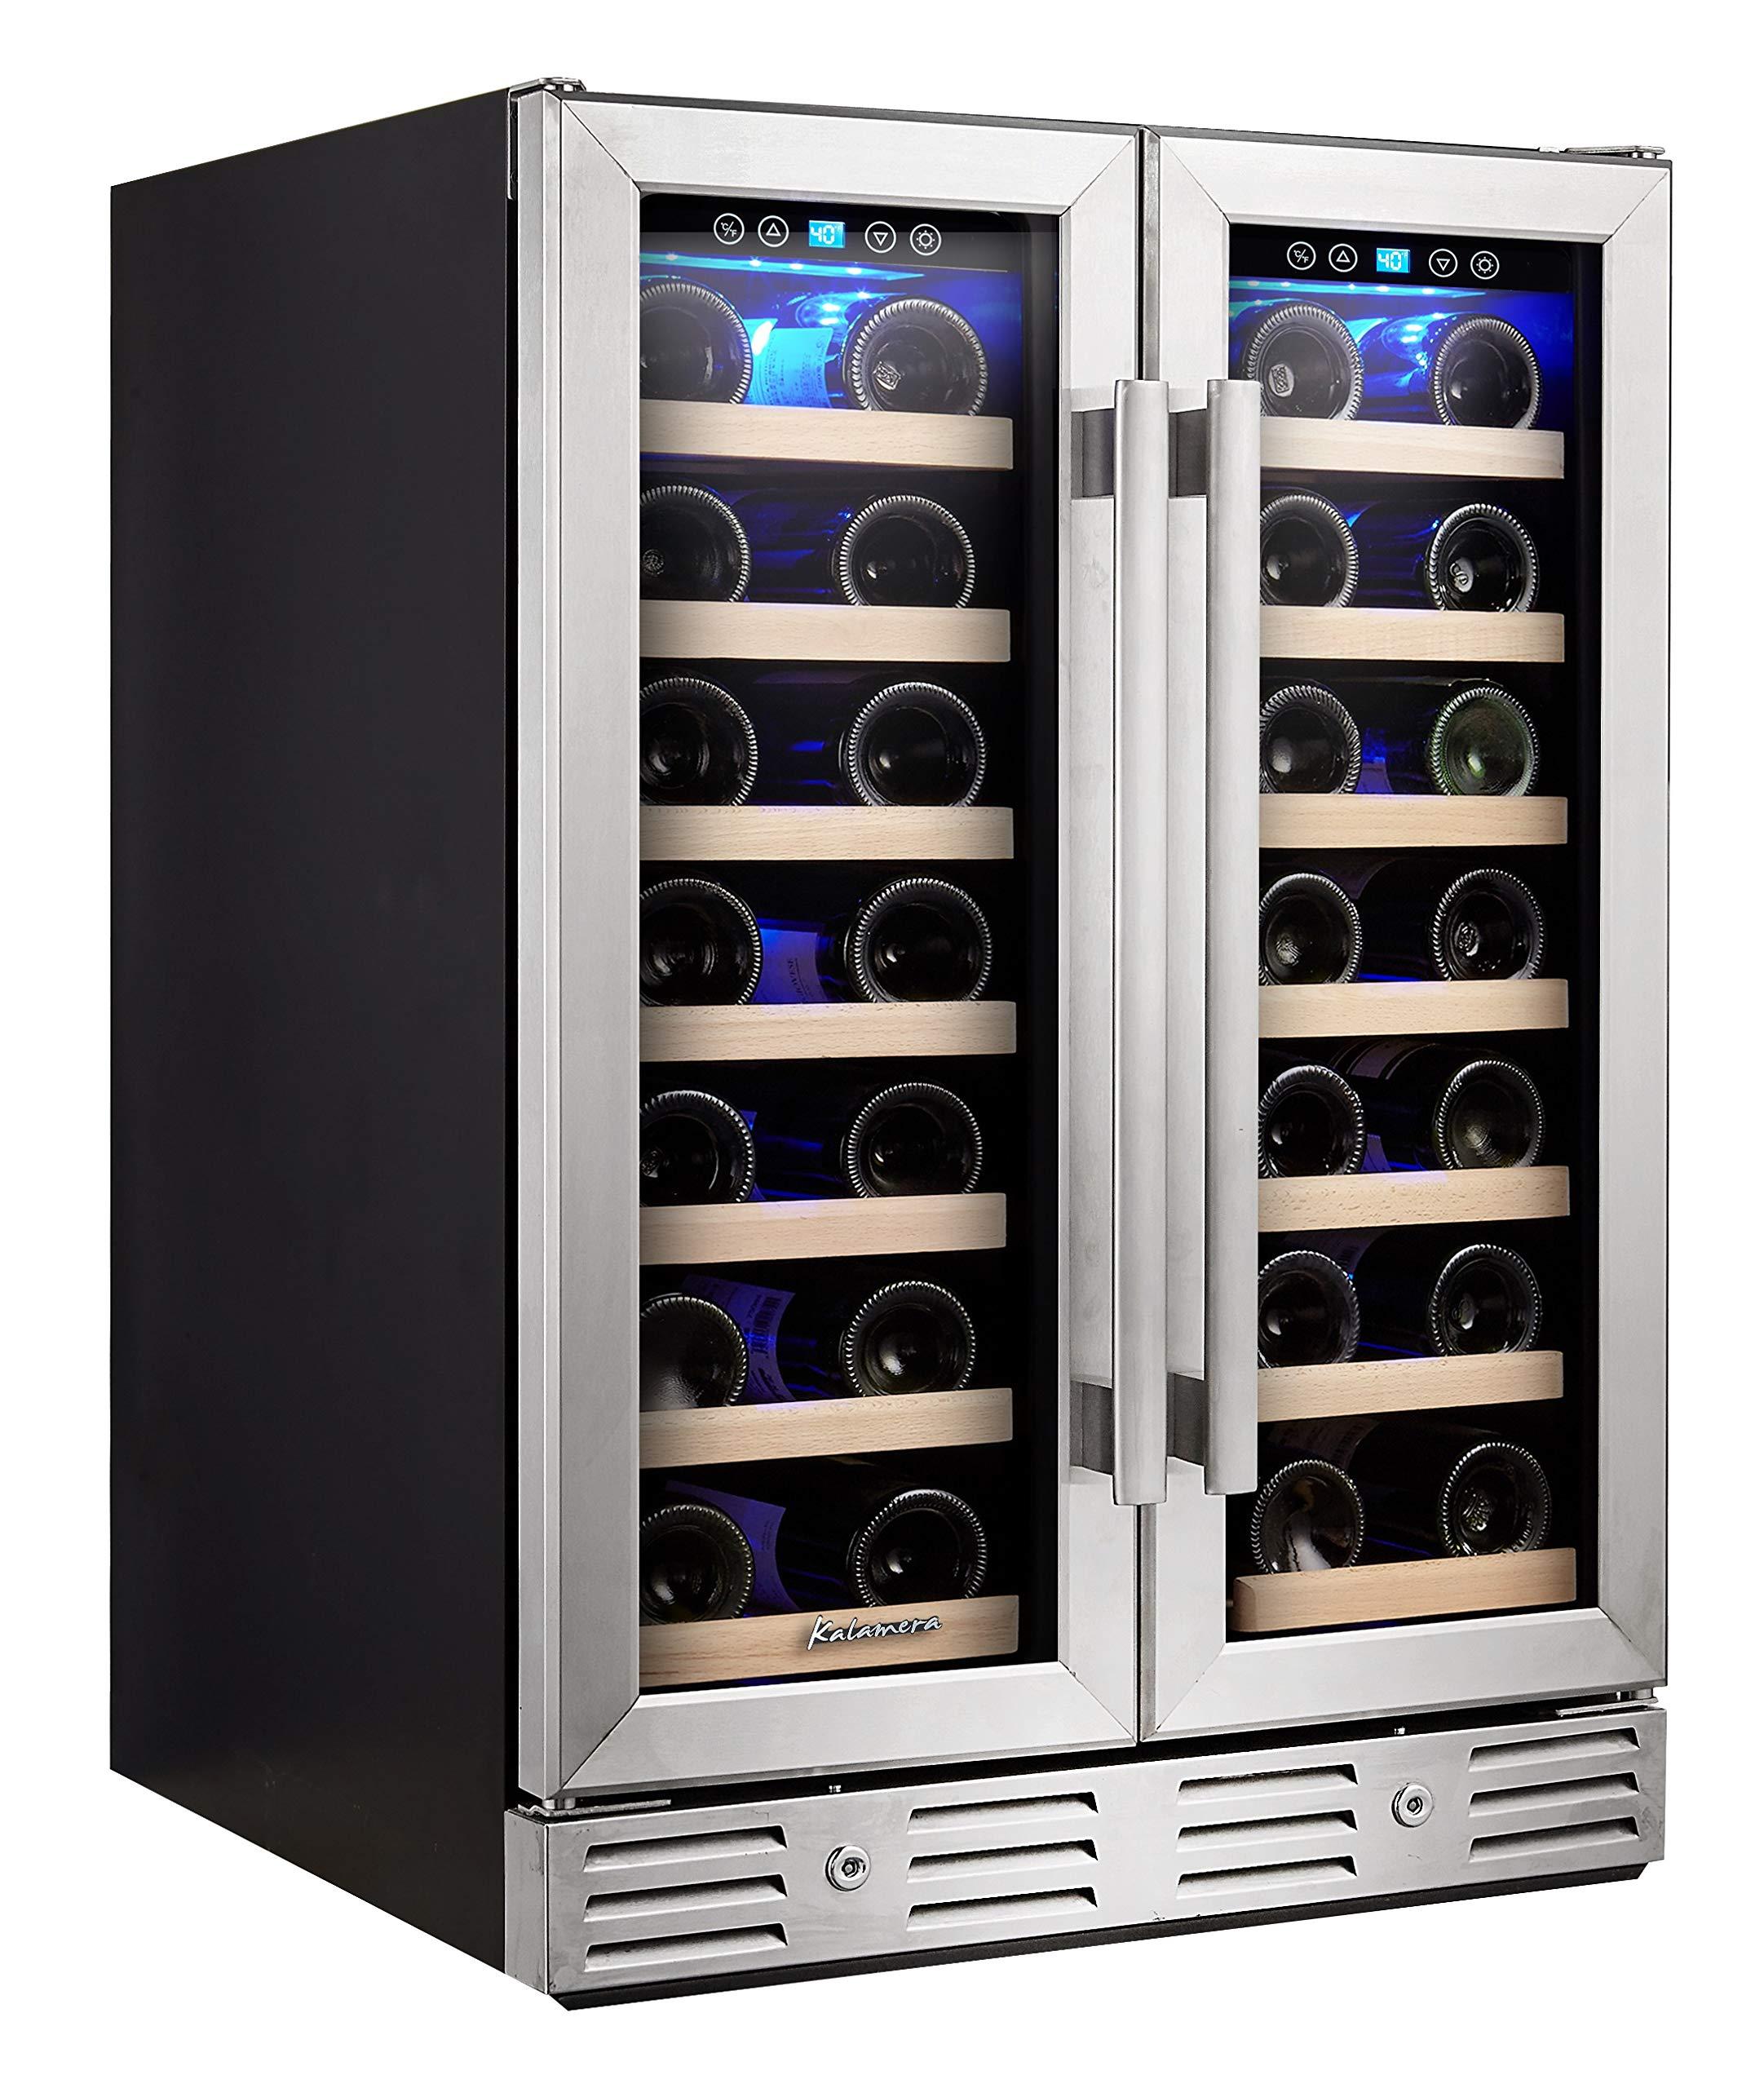 Kalamera Wine Cooler - Fit Perfectly into 24 inch Space Under Counter or Freestanding - Dual Zone - For Kitchen or Bar with Blue Interior Light and Temperature Memory Function by Kalamera